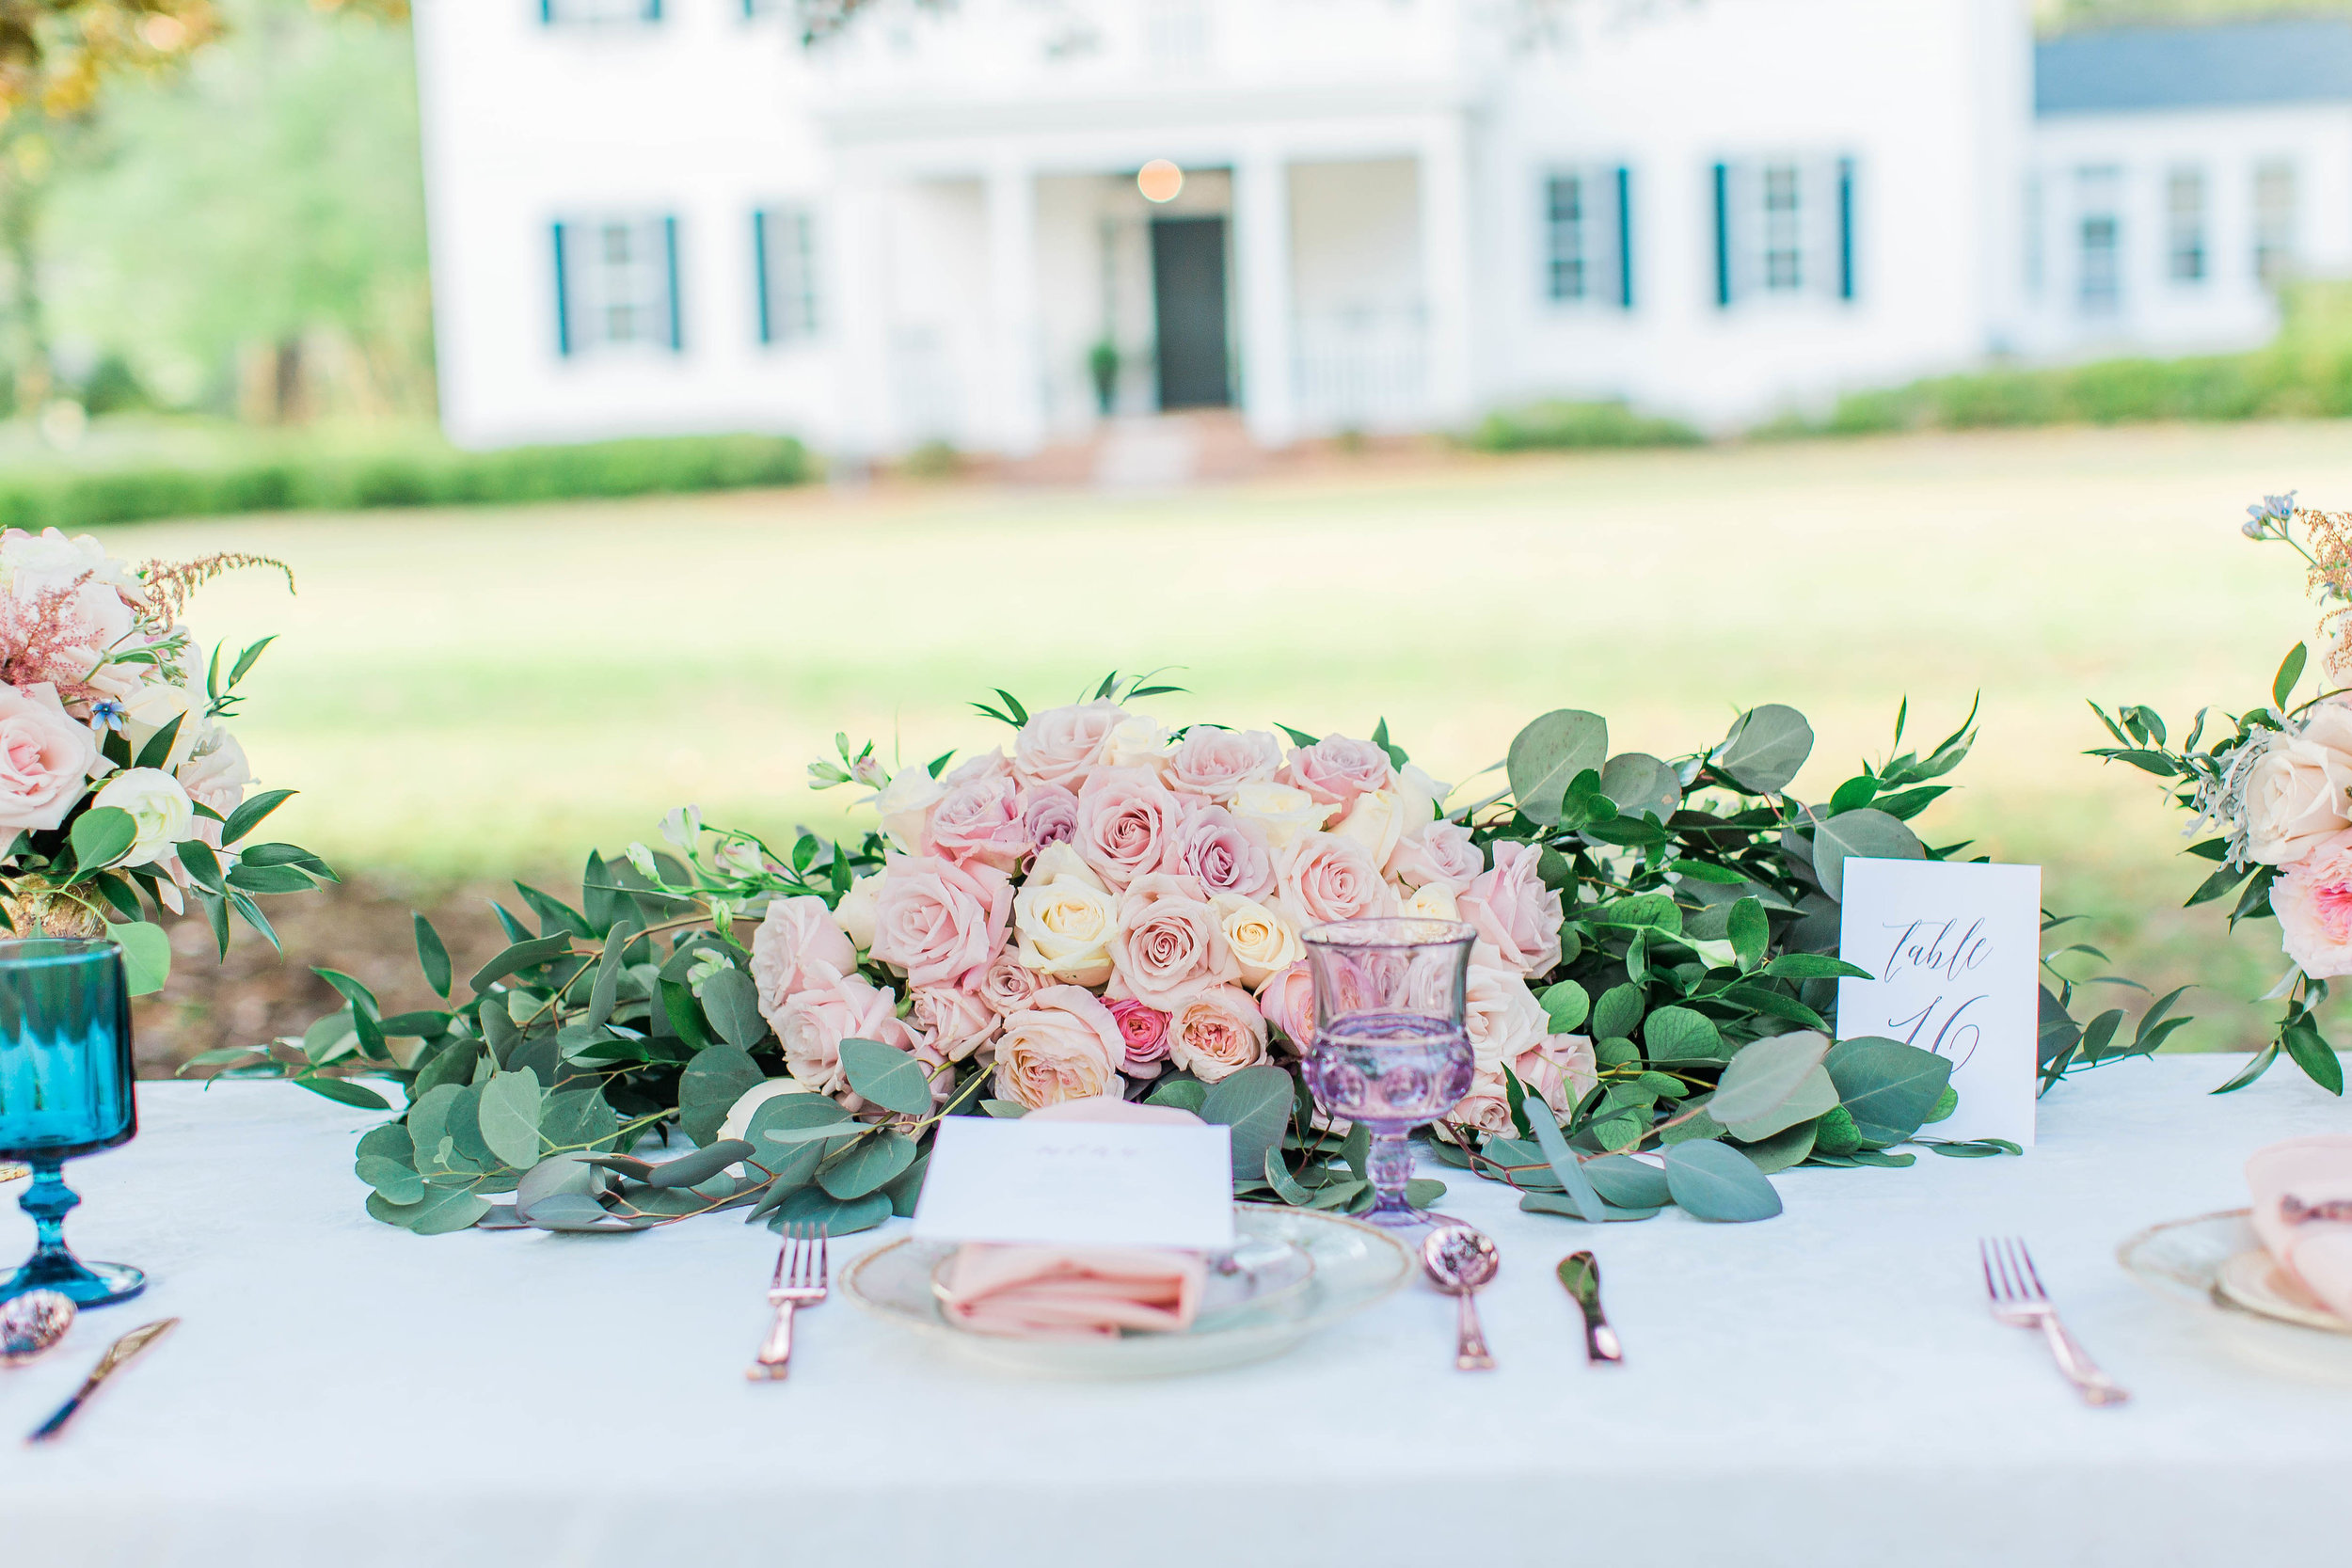 Wedding Inspiration: Pink and Blue Wedding Styled Shoot at Proctor Hall, Camden   Palmetto State Weddings